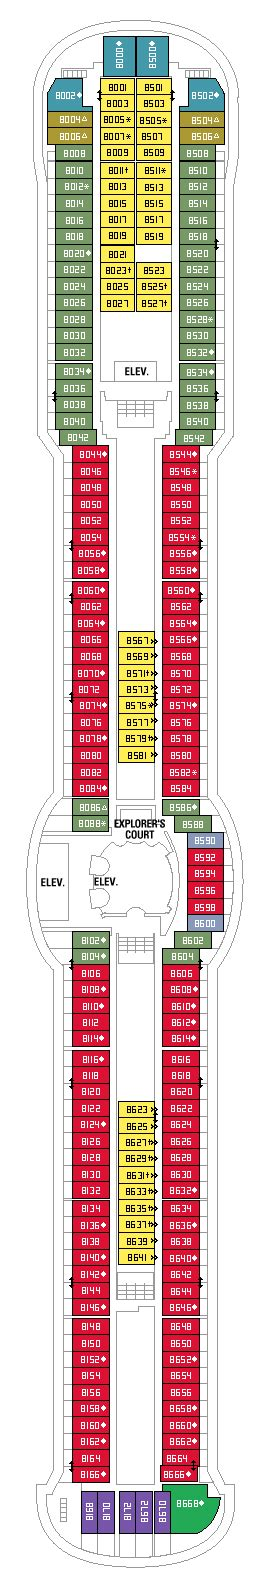 Serenade Of The Seas Deck Plans by Deck Plan For Serenade Of The Seas Iglucruise